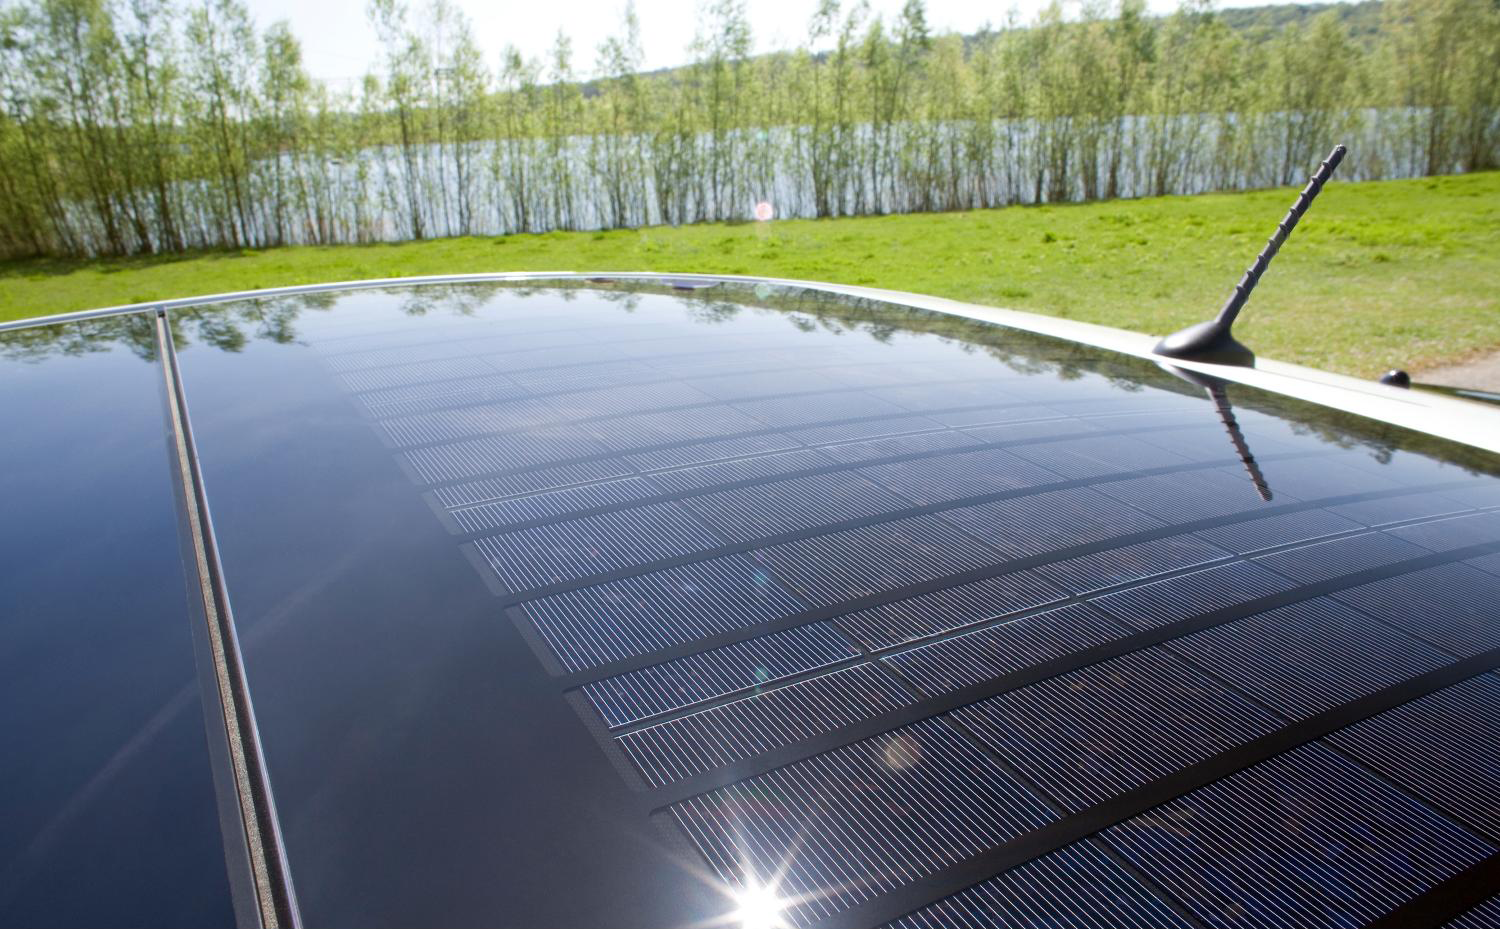 Audi working with Alta Devices on cars with 'solar roofs'